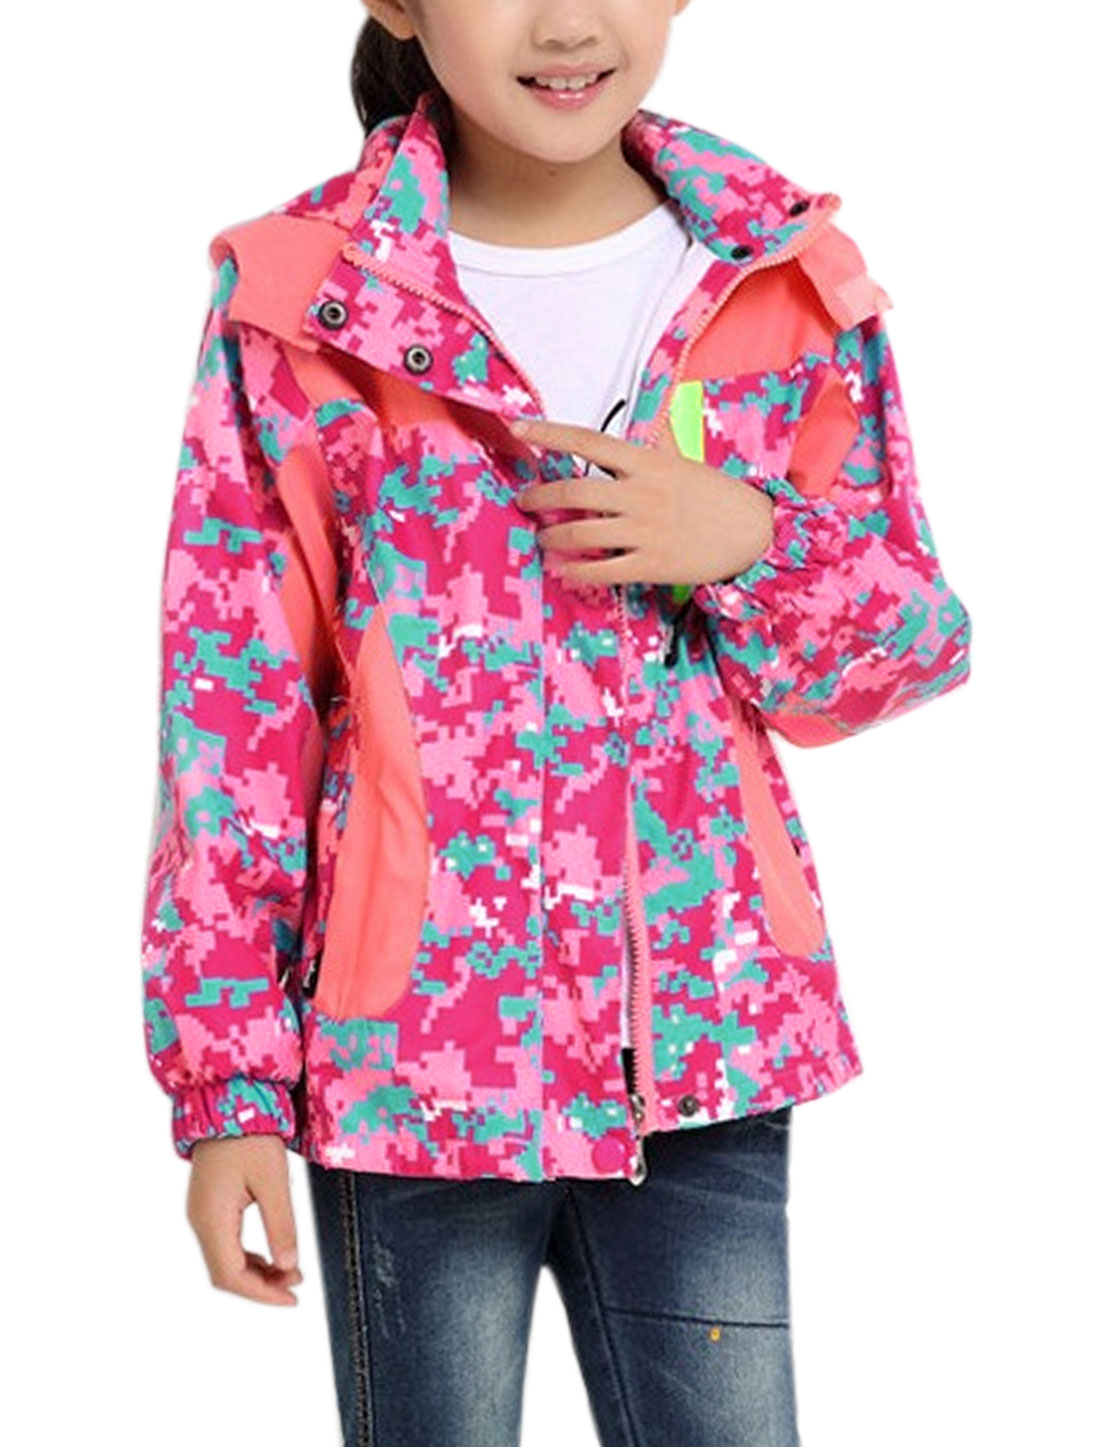 Girls Two Pockets Camouflage Print Hooded Zip Up Jacket Pink 16